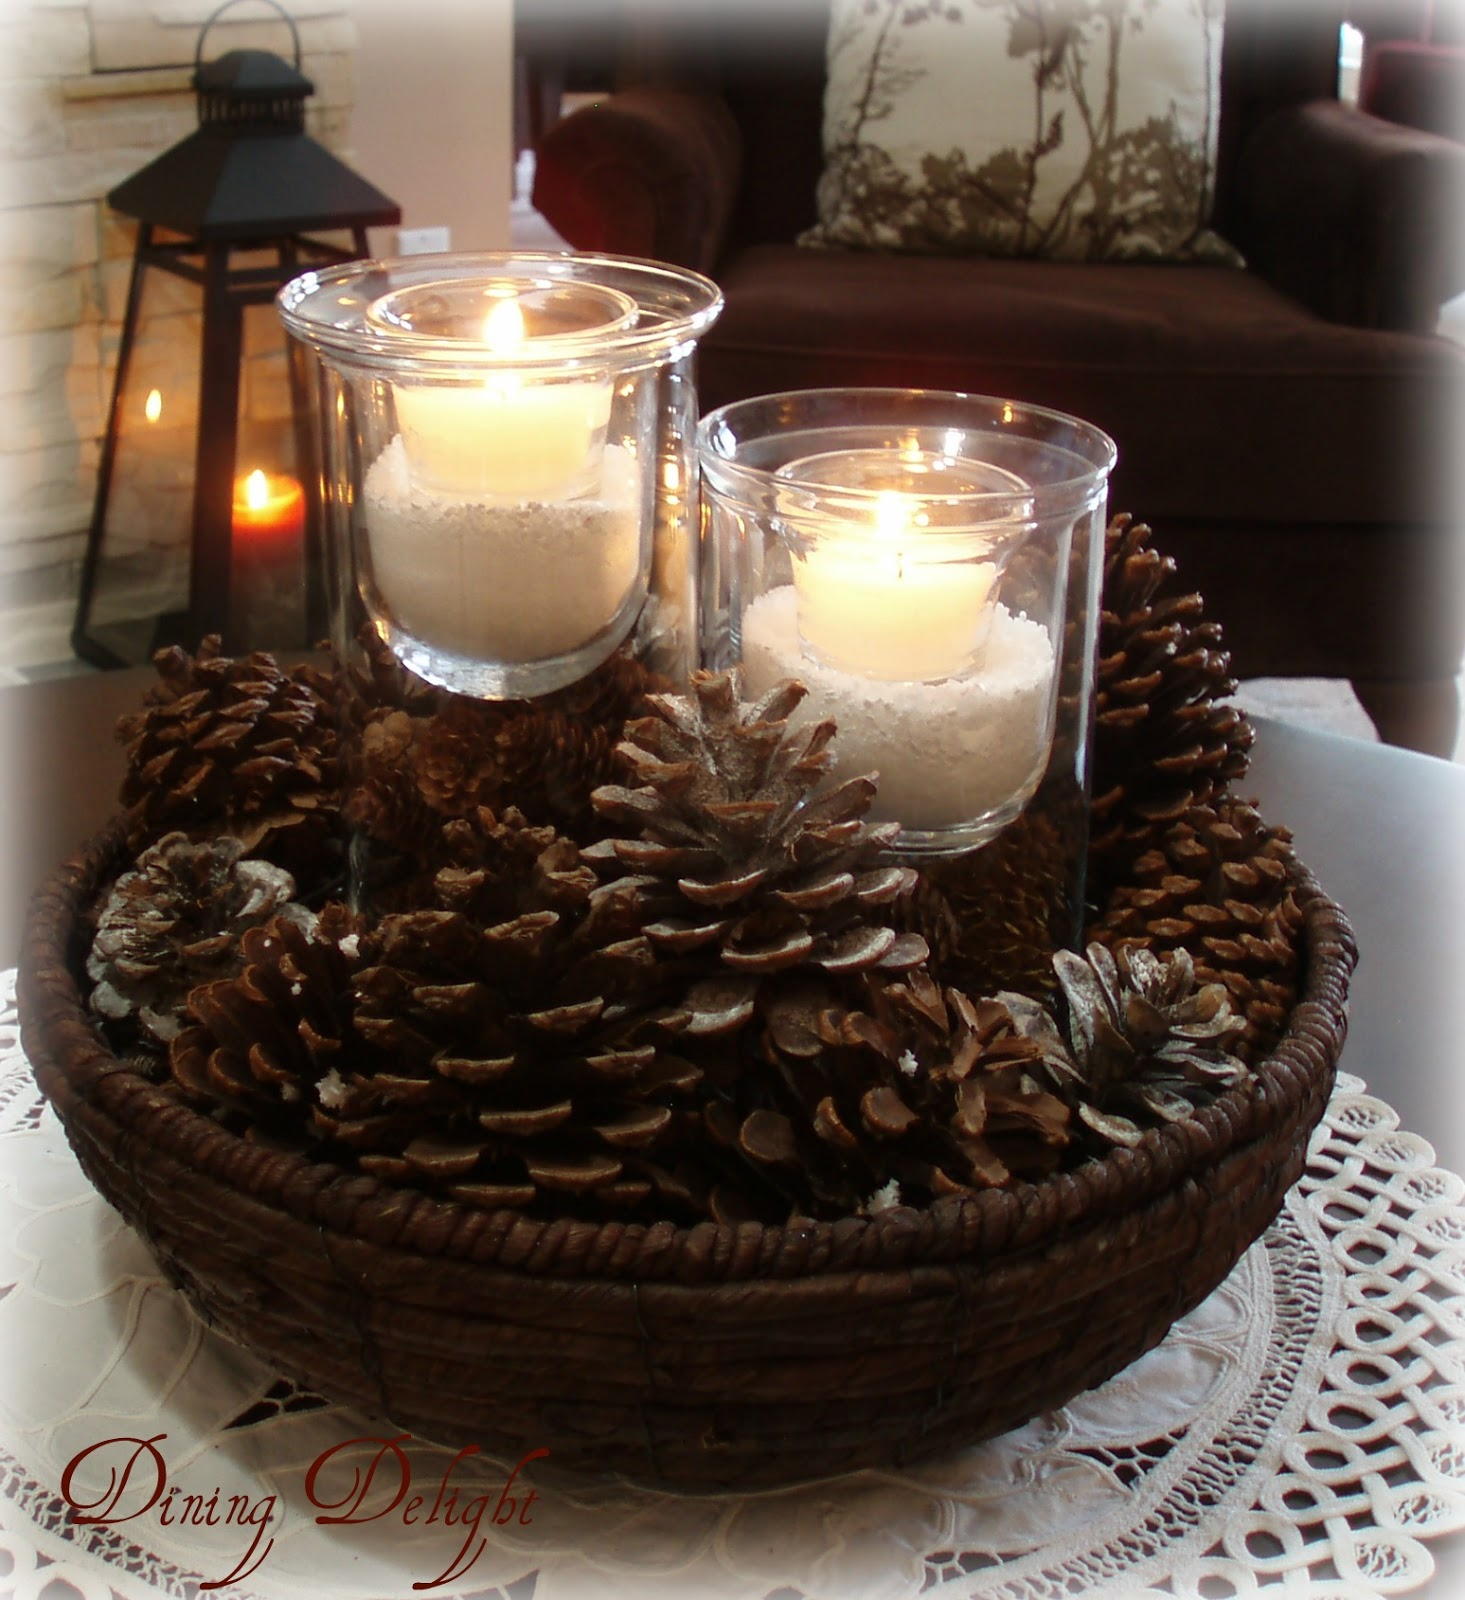 Pine Cone Candle Centerpiece : Dining delight winter living room in white brown and cream